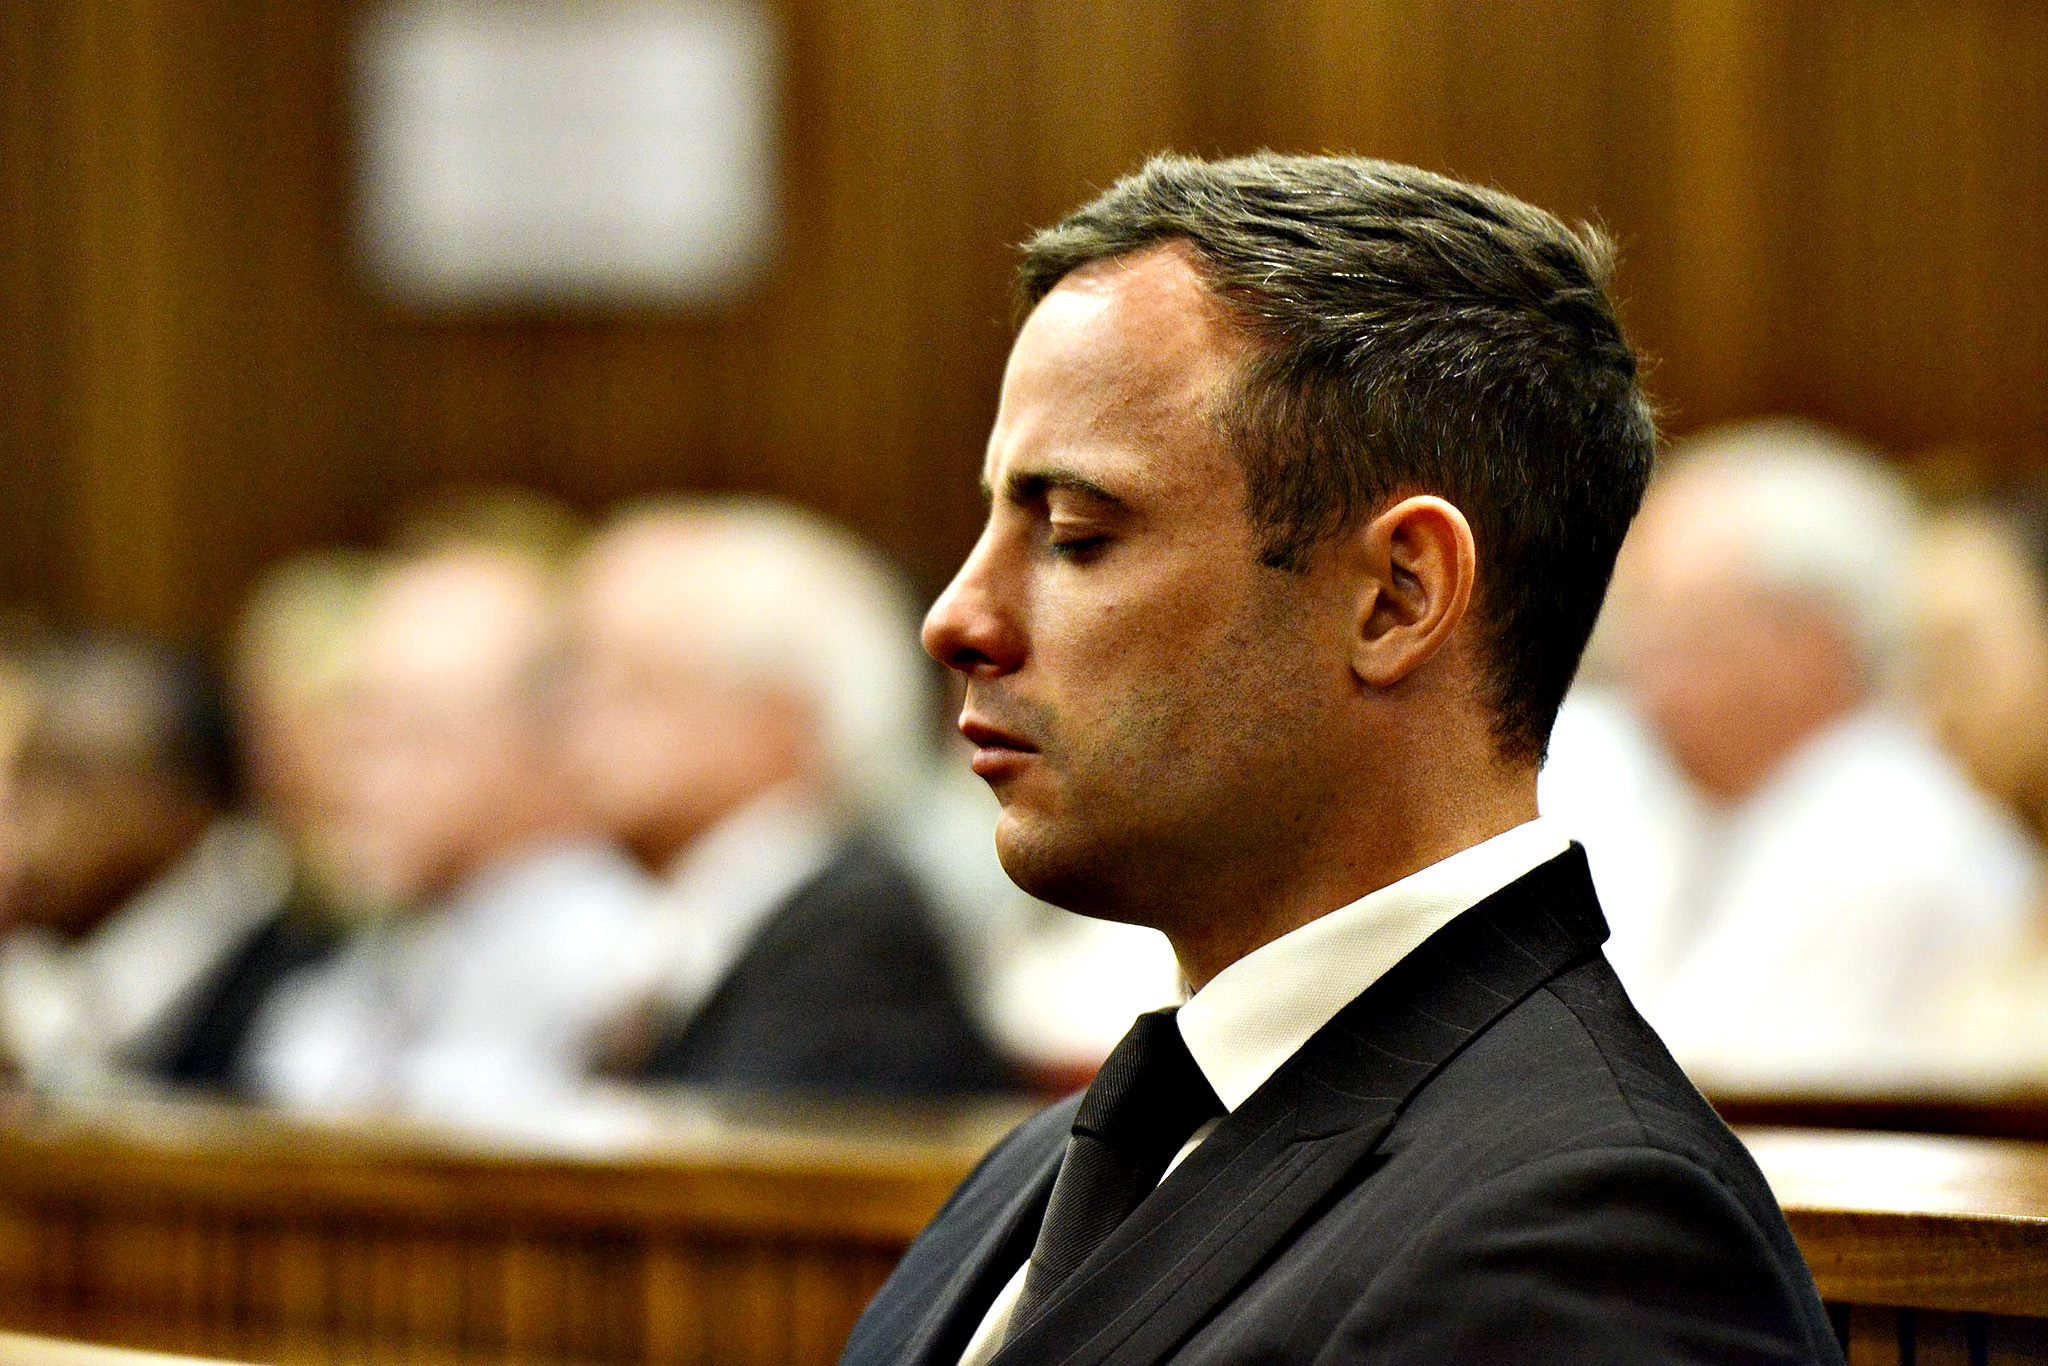 South African Paralympic athlete Oscar Pistorius at the High Court in Pretoria, South Africa, 21 October 2014. Pistorius was sentenced to 5 years in prison for killing his girlfriend Reeve Steenkamp in February 2013.